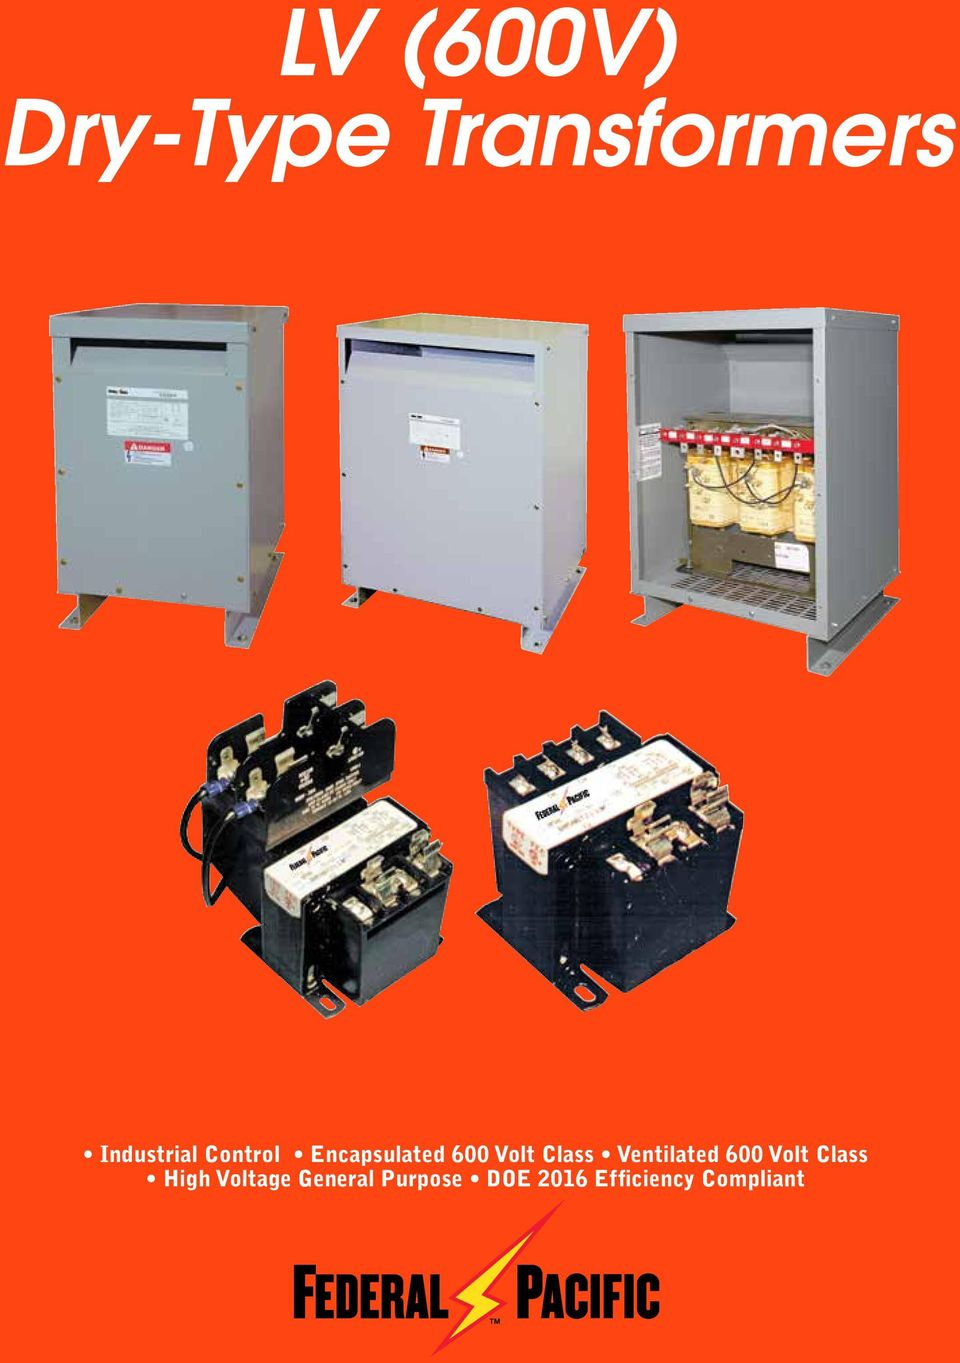 Lv 600v Dry Type Transformers Pdf Drytype Transformer Testing Open Electrical Class Ventilated 600 Volt High